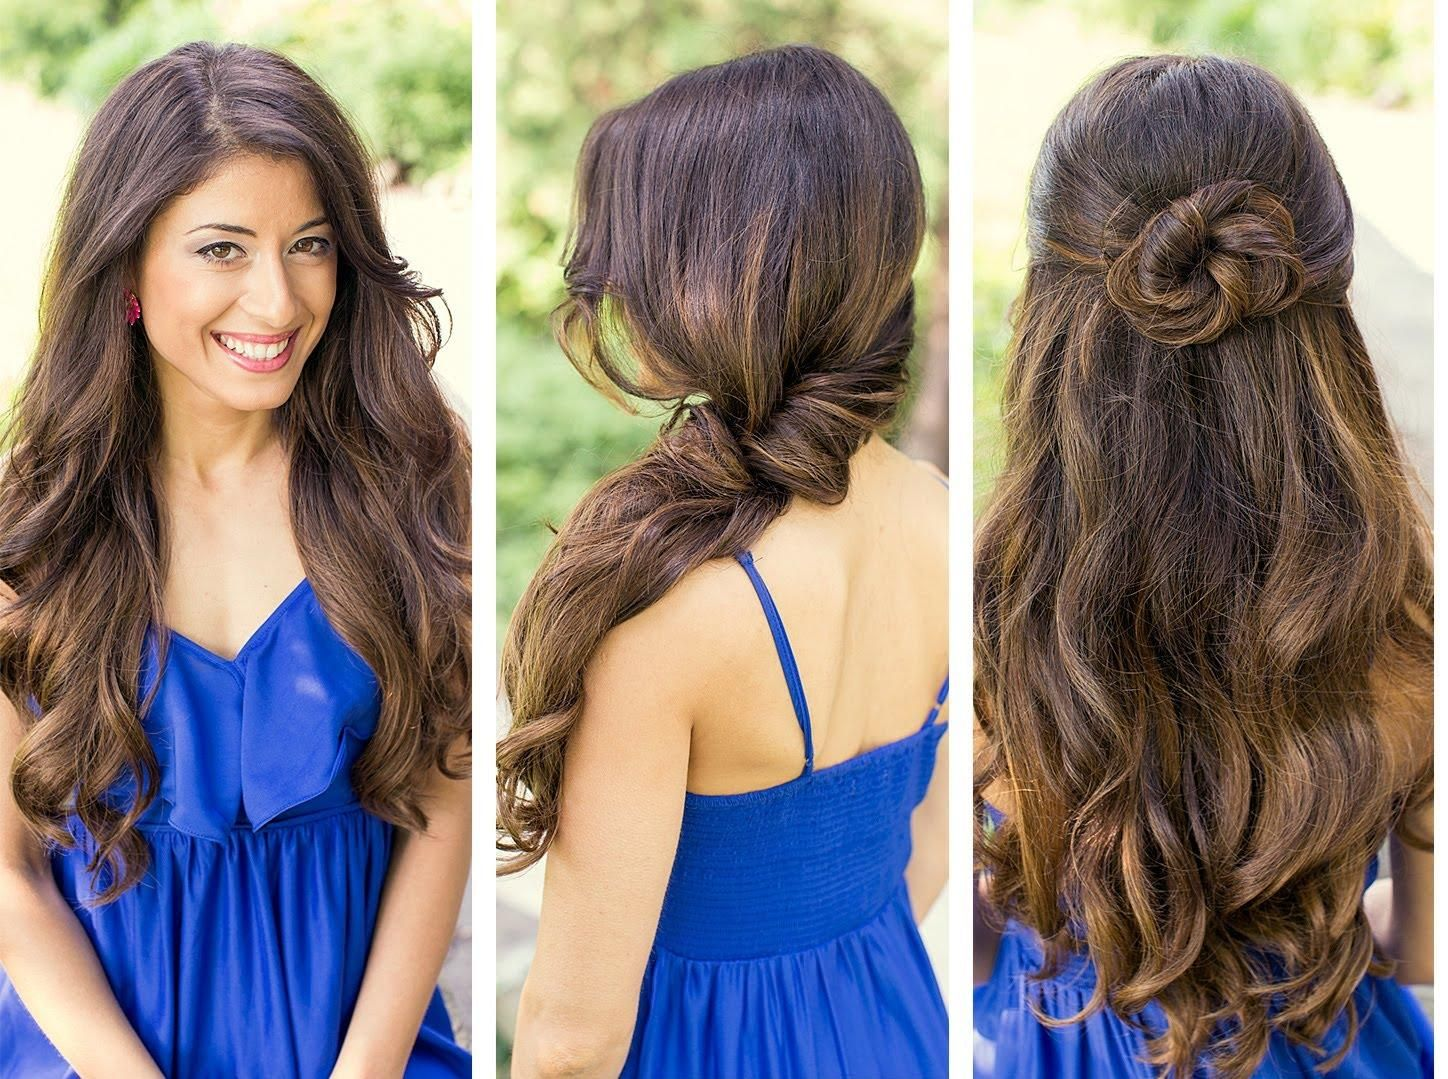 hair style for girls | long hairstyles | hair styles, long